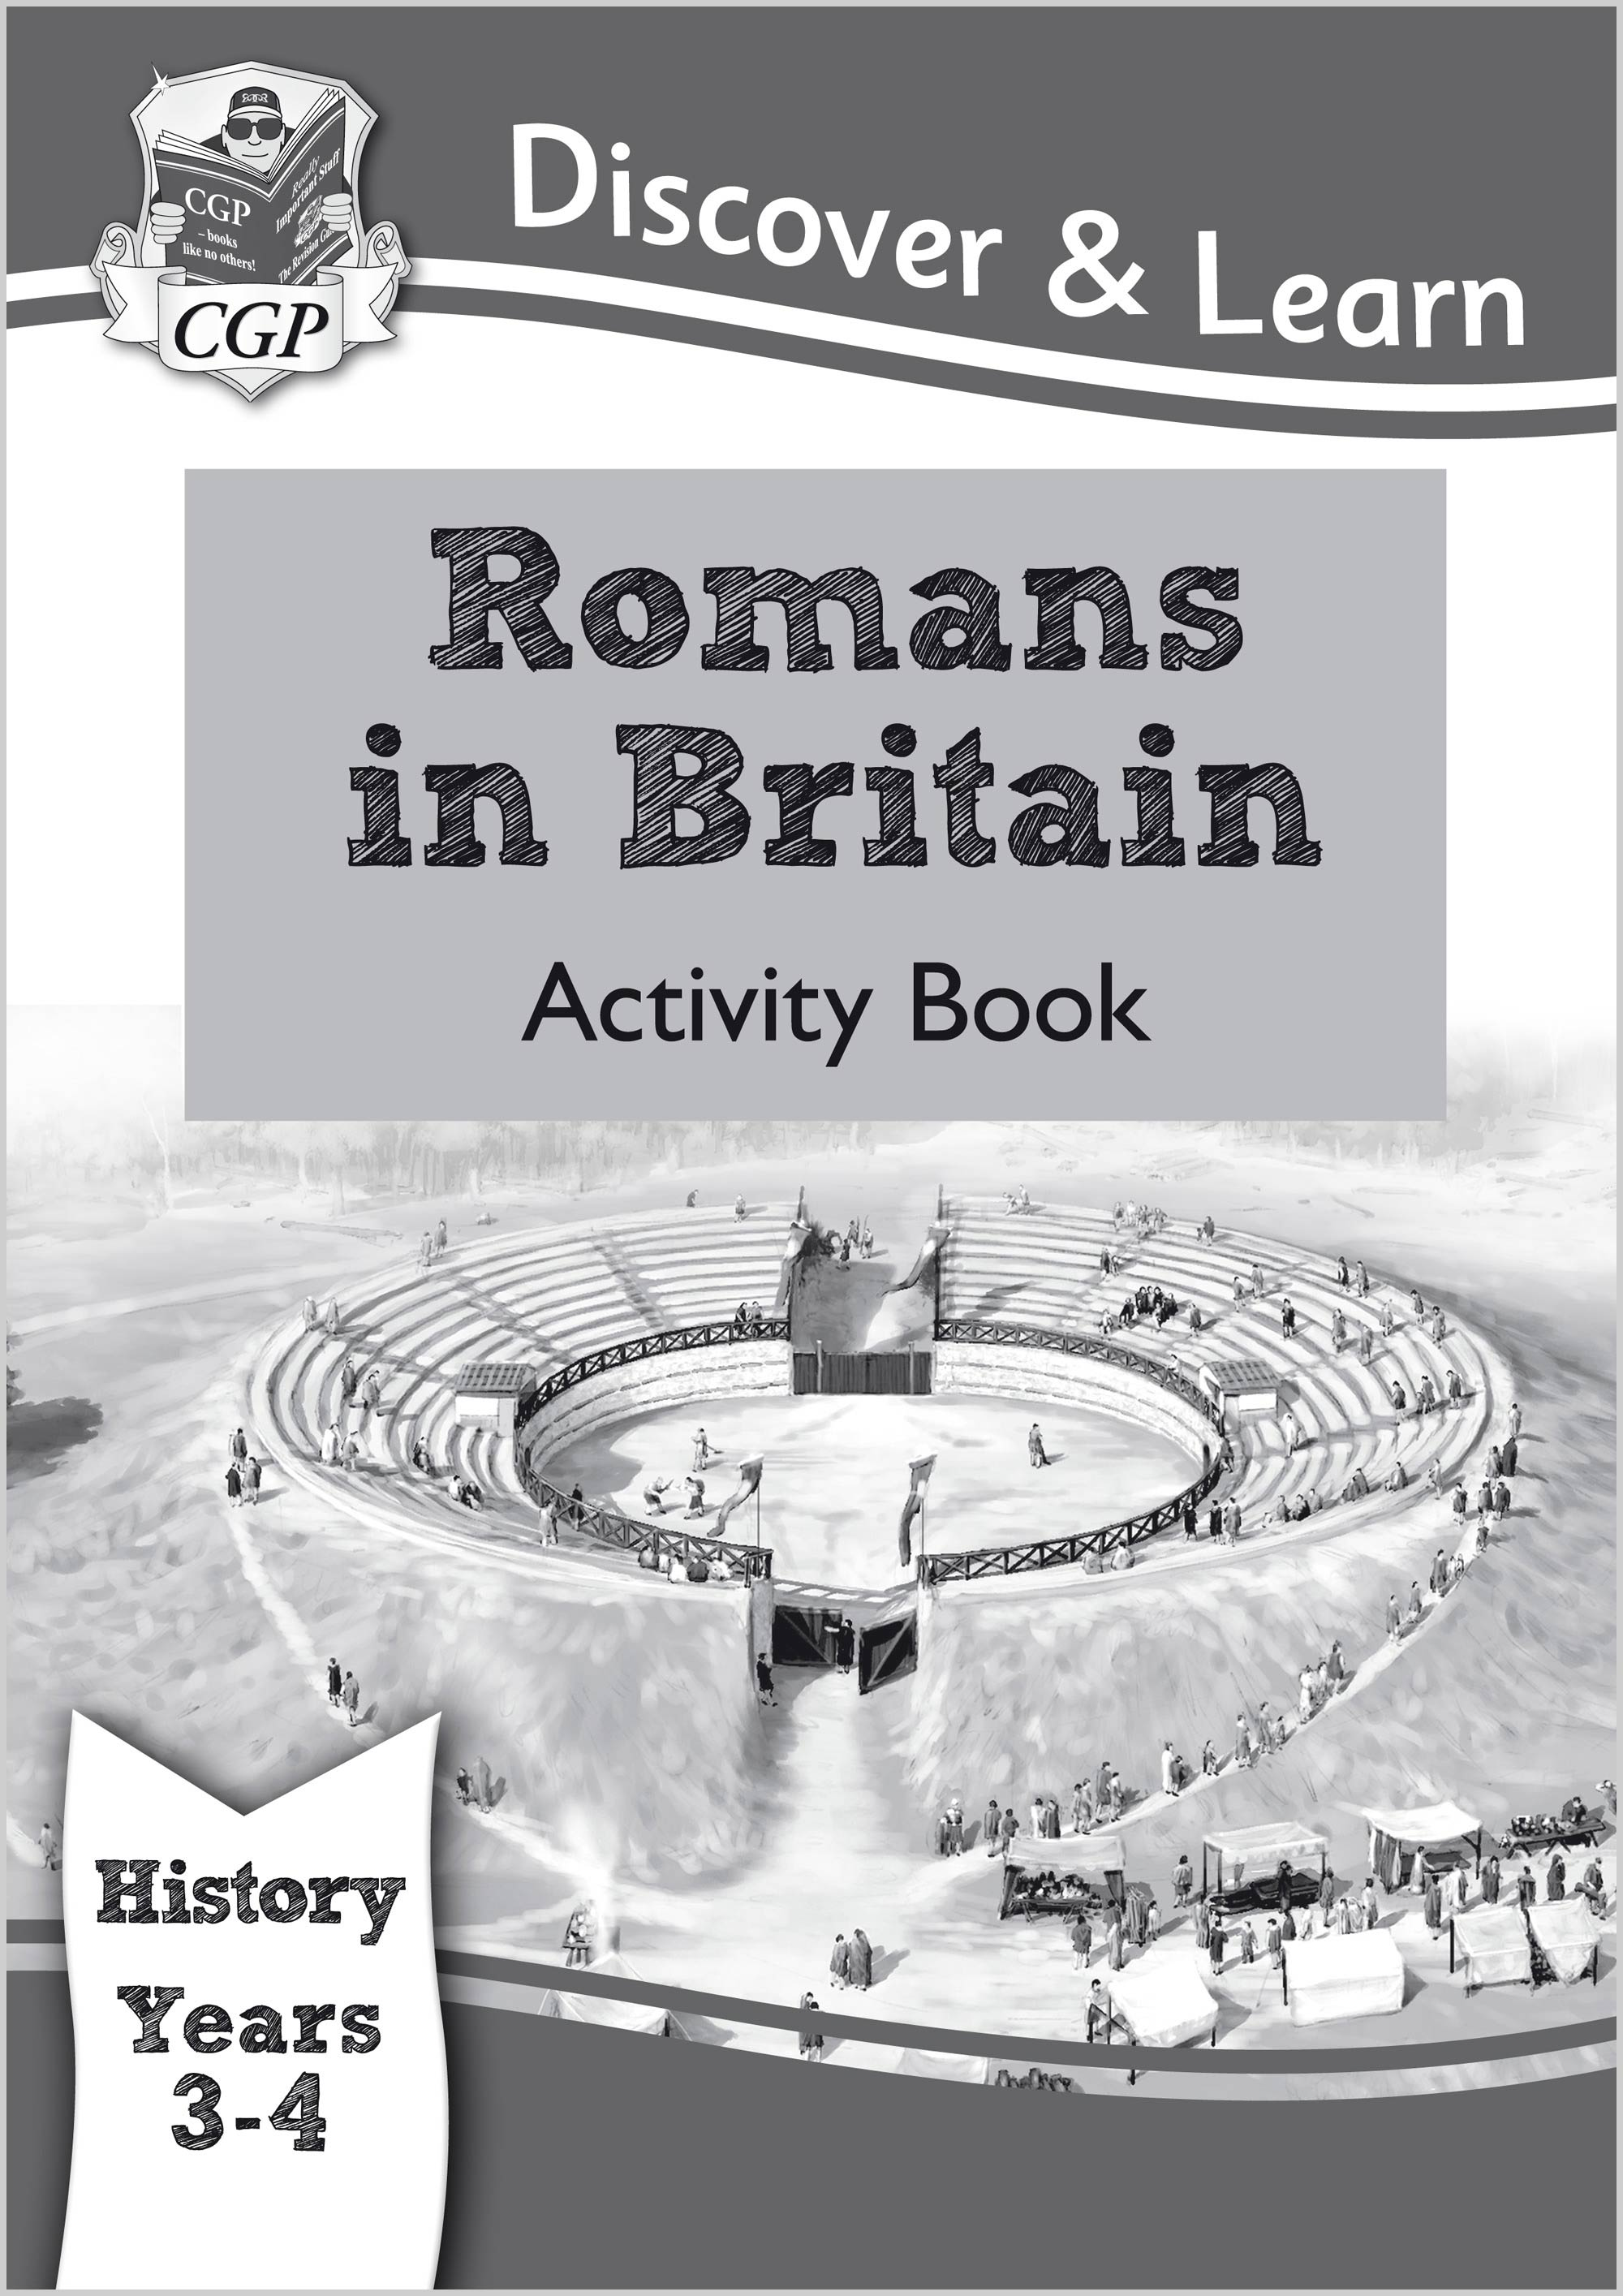 HRW22 - KS2 Discover & Learn: History - Romans in Britain Activity book, Year 3 & 4